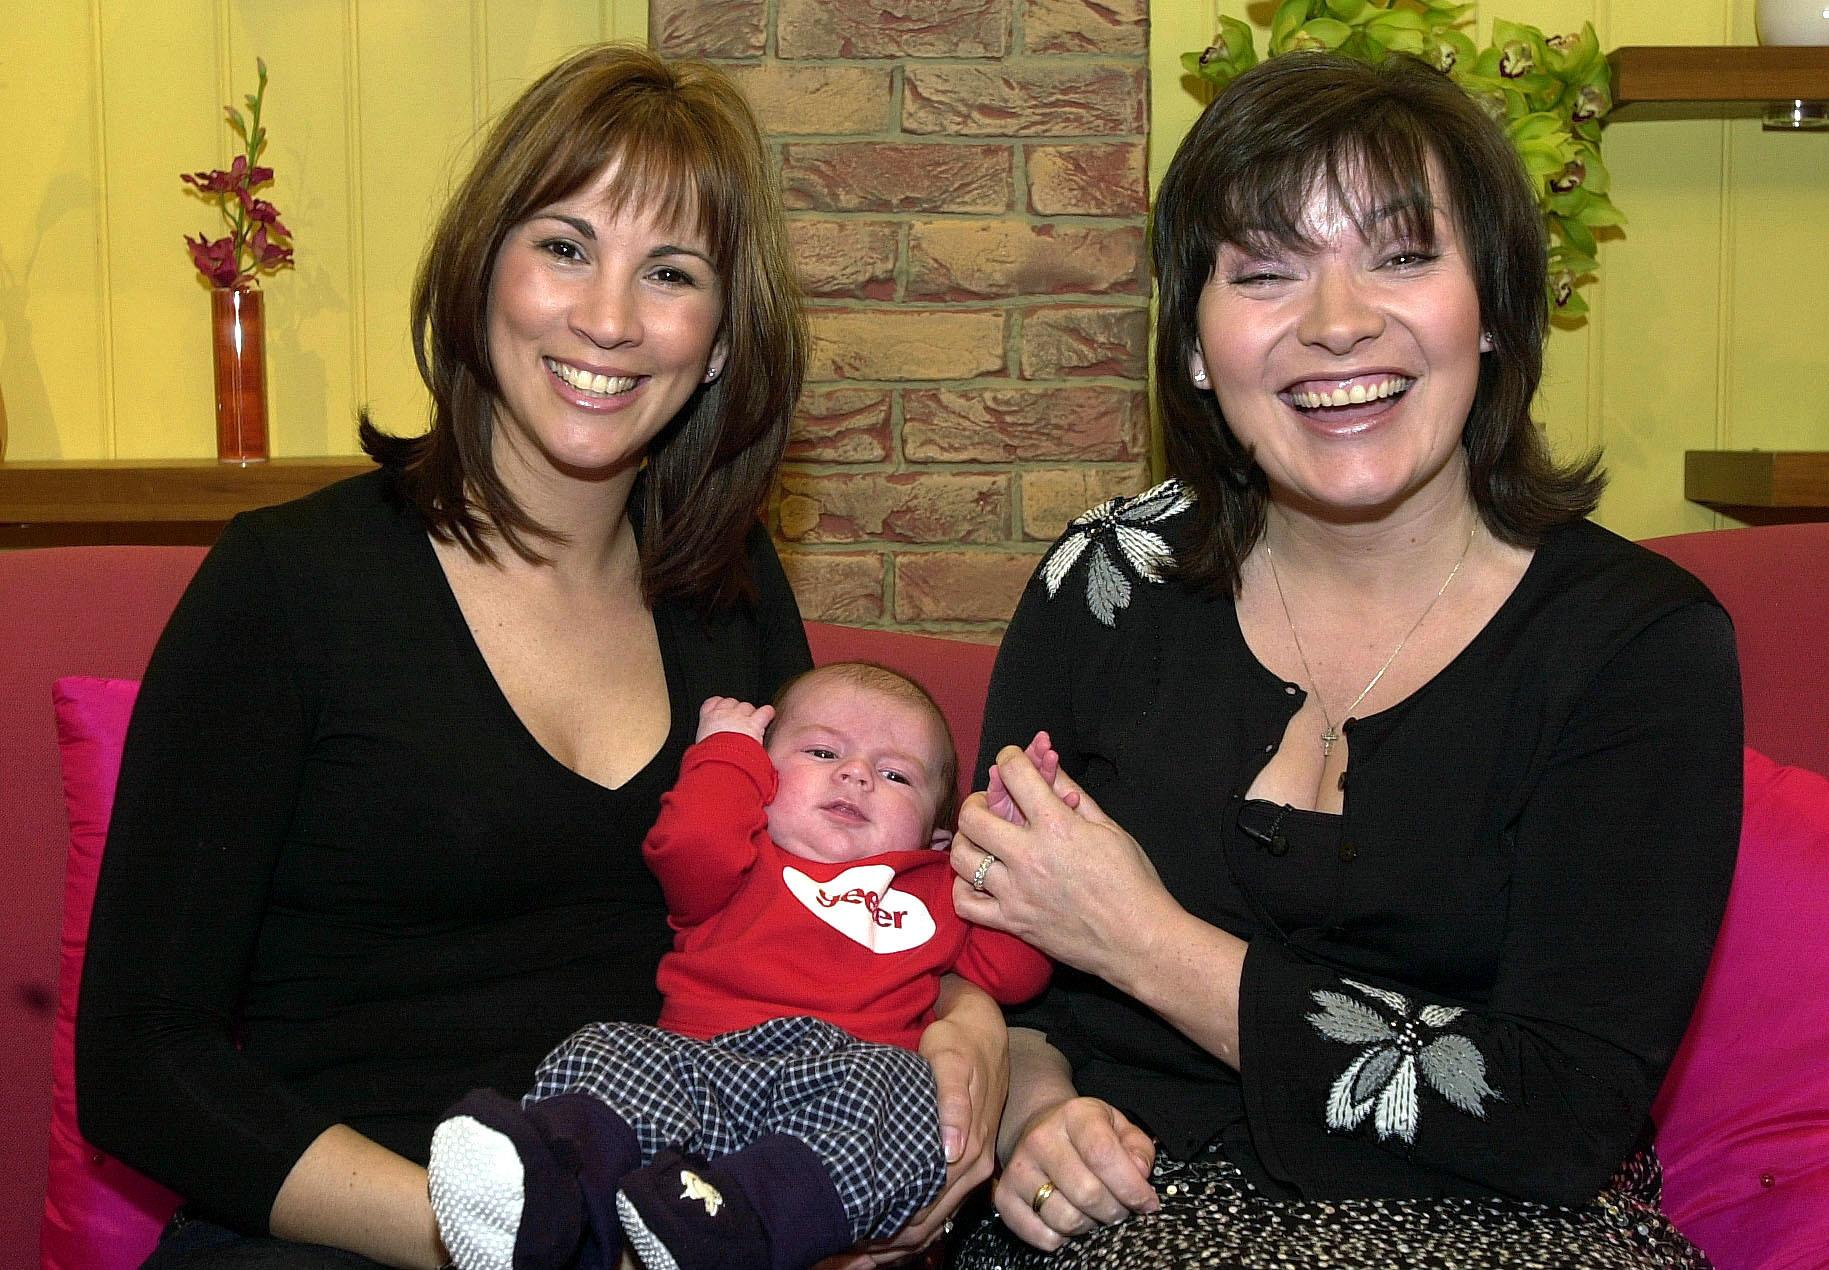 GMTV weather presenter Andrea McLean (left) with her 11-week-old son Finlay and GMTV presenter Lorraine Kelly after appearing on the show in London.